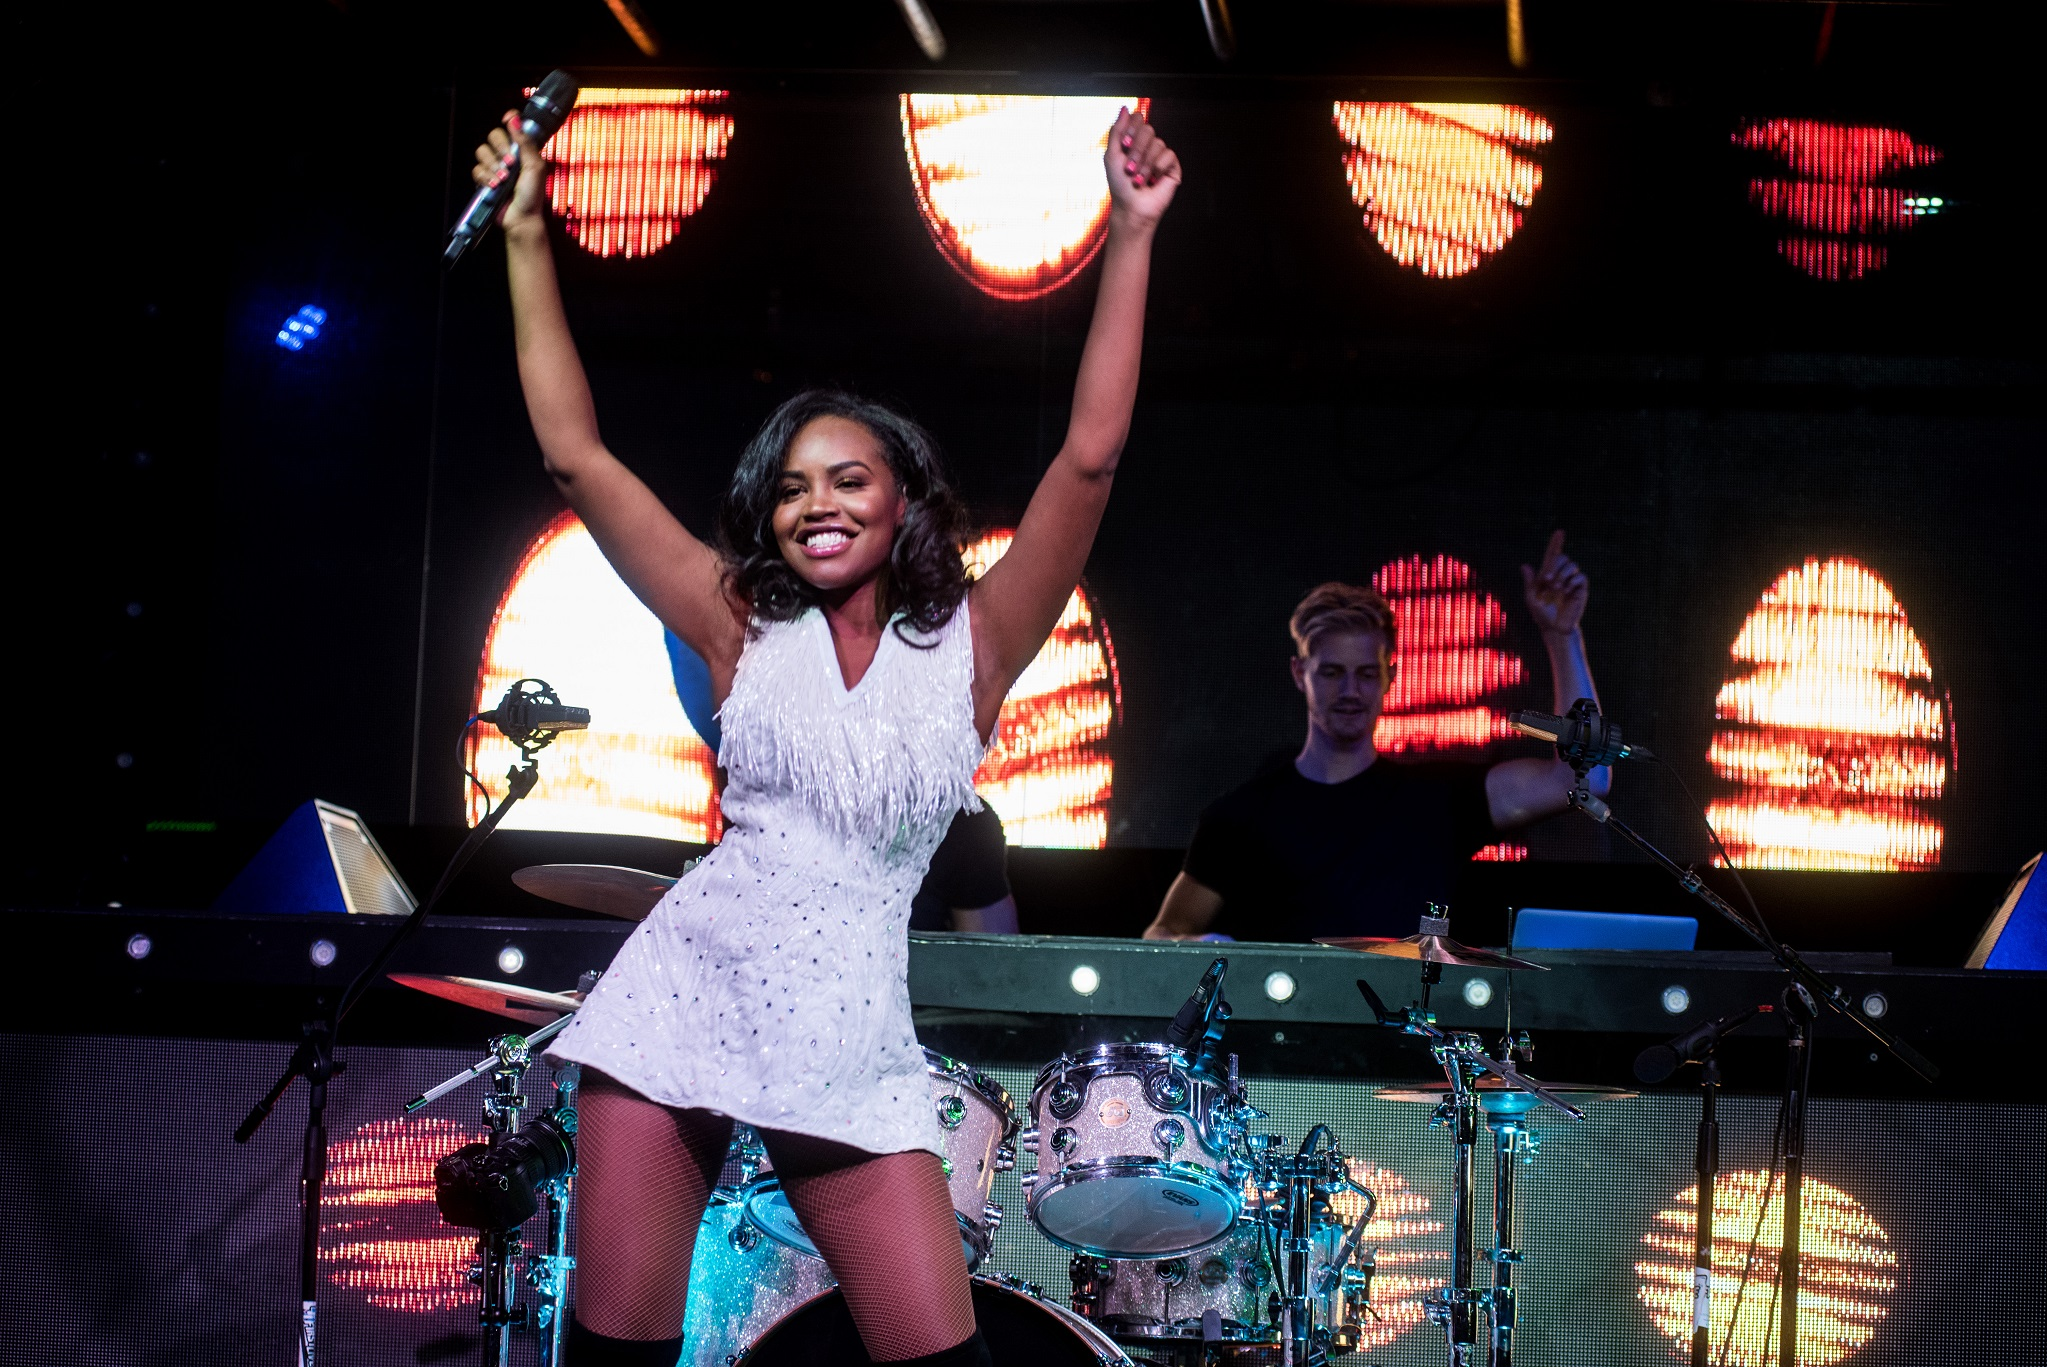 Glorious-Singer-Livetronica Drummer-Producer-Songwriter-Marquee-Nightclub-Video-New York-NY-2lr.jpg